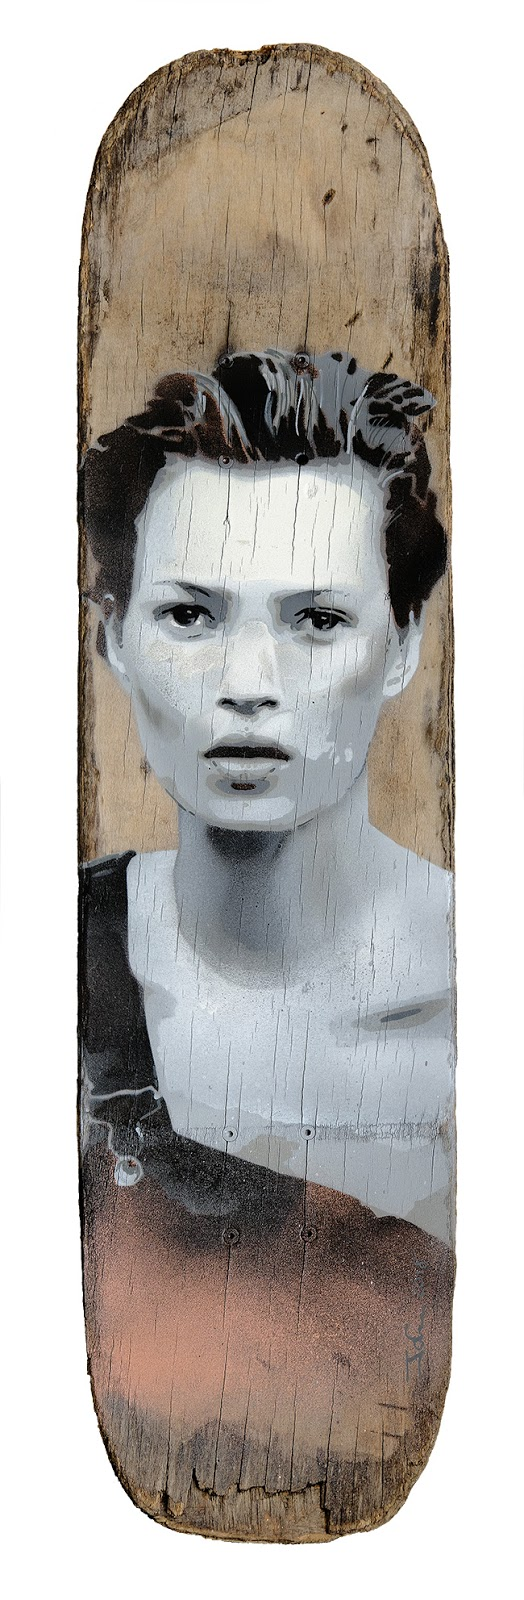 Kate Moss - skateboard artwork created by artist James Straffon